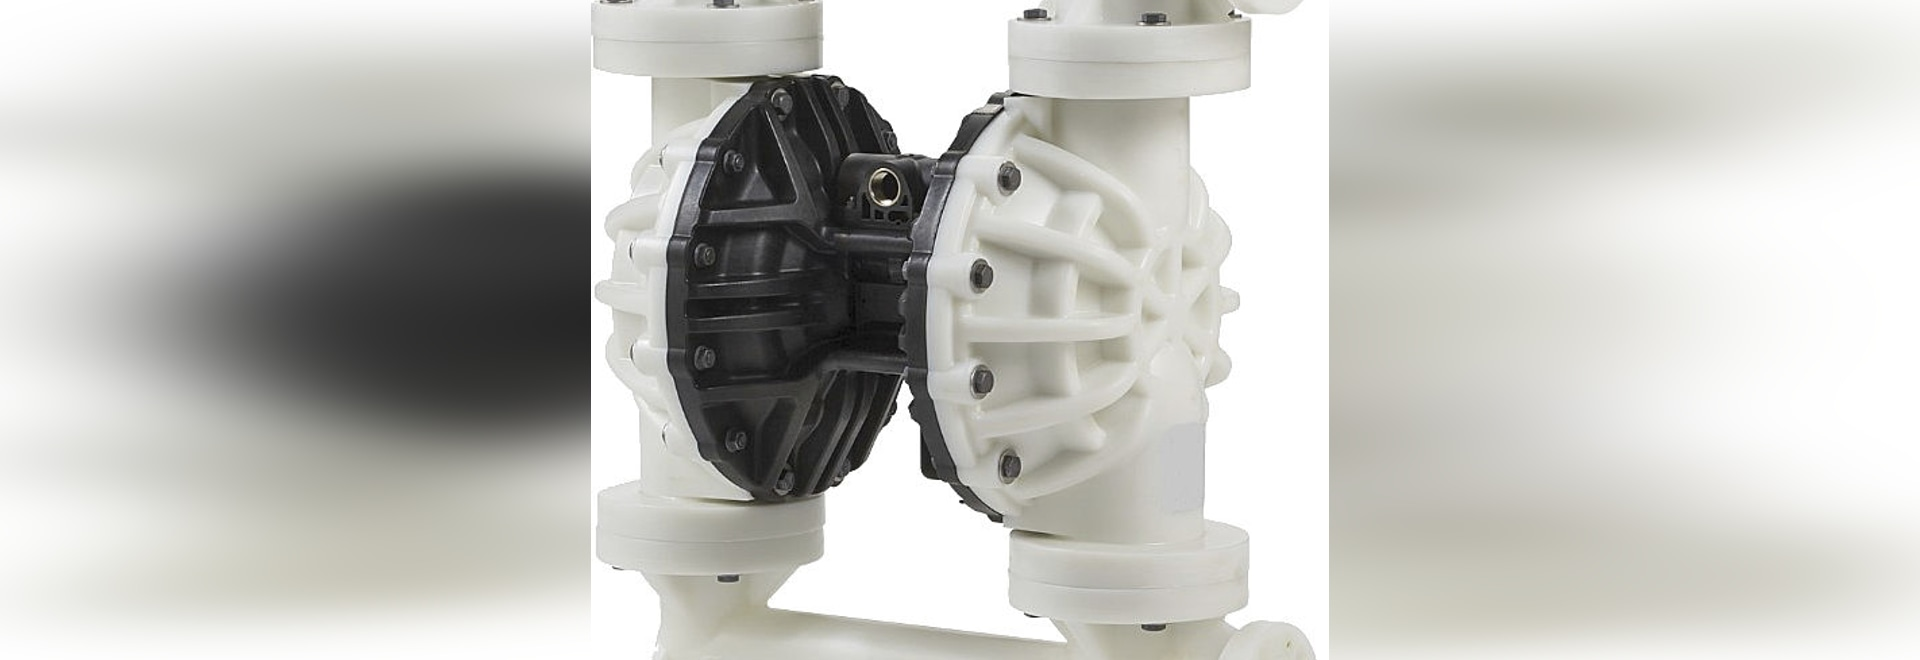 TECHNI-FLOW : AIR OPERATED DIAPHRAGM PUMPS TFG800 2ʺ  FOR CHEMICAL FLUIDS